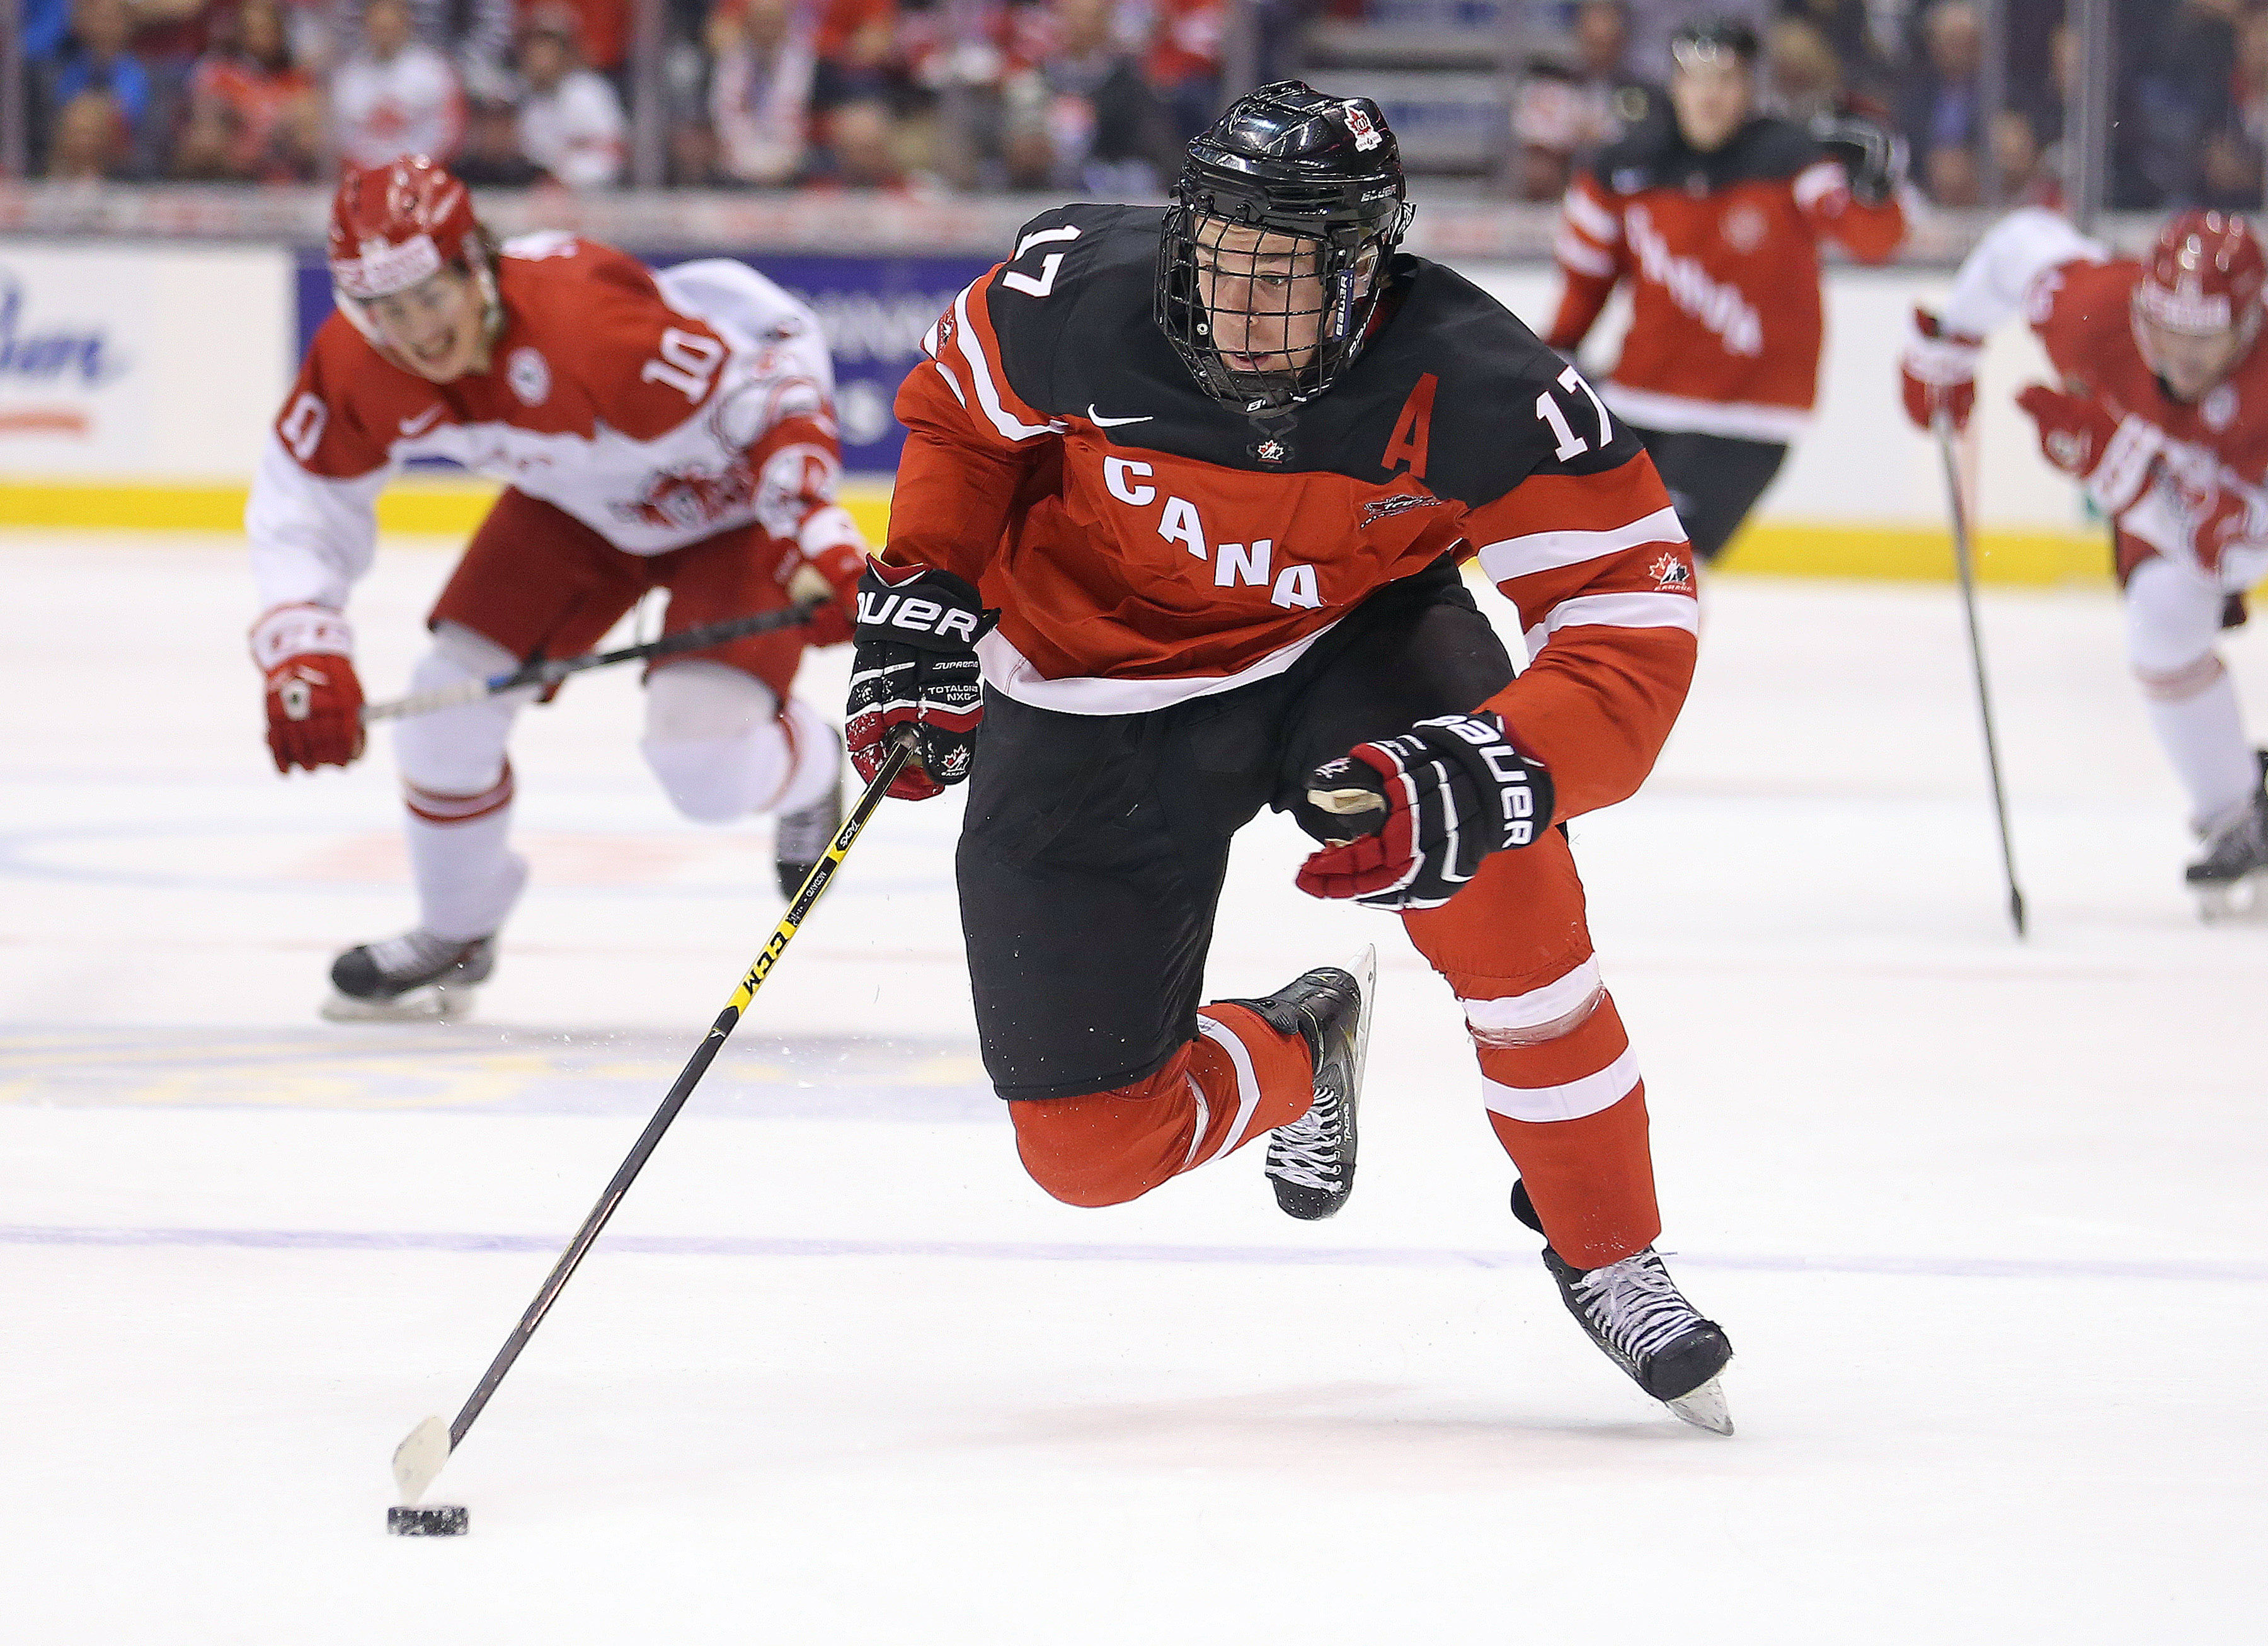 TORONTO, ON - JANUARY 2:  Connor McDavid #17 of Team Canada breaks away for a goal against Team Denmark during a quarter-final game in the 2015 World Junior Hockey Championship at the Air Canada Centre on January 2, 2015 in Toronto, Ontario, Canada. Team Canada defeated Team Denmark 8-0. (Photo by Claus Andersen/Getty Images) ORG XMIT: 522141593 [Via MerlinFTP Drop]